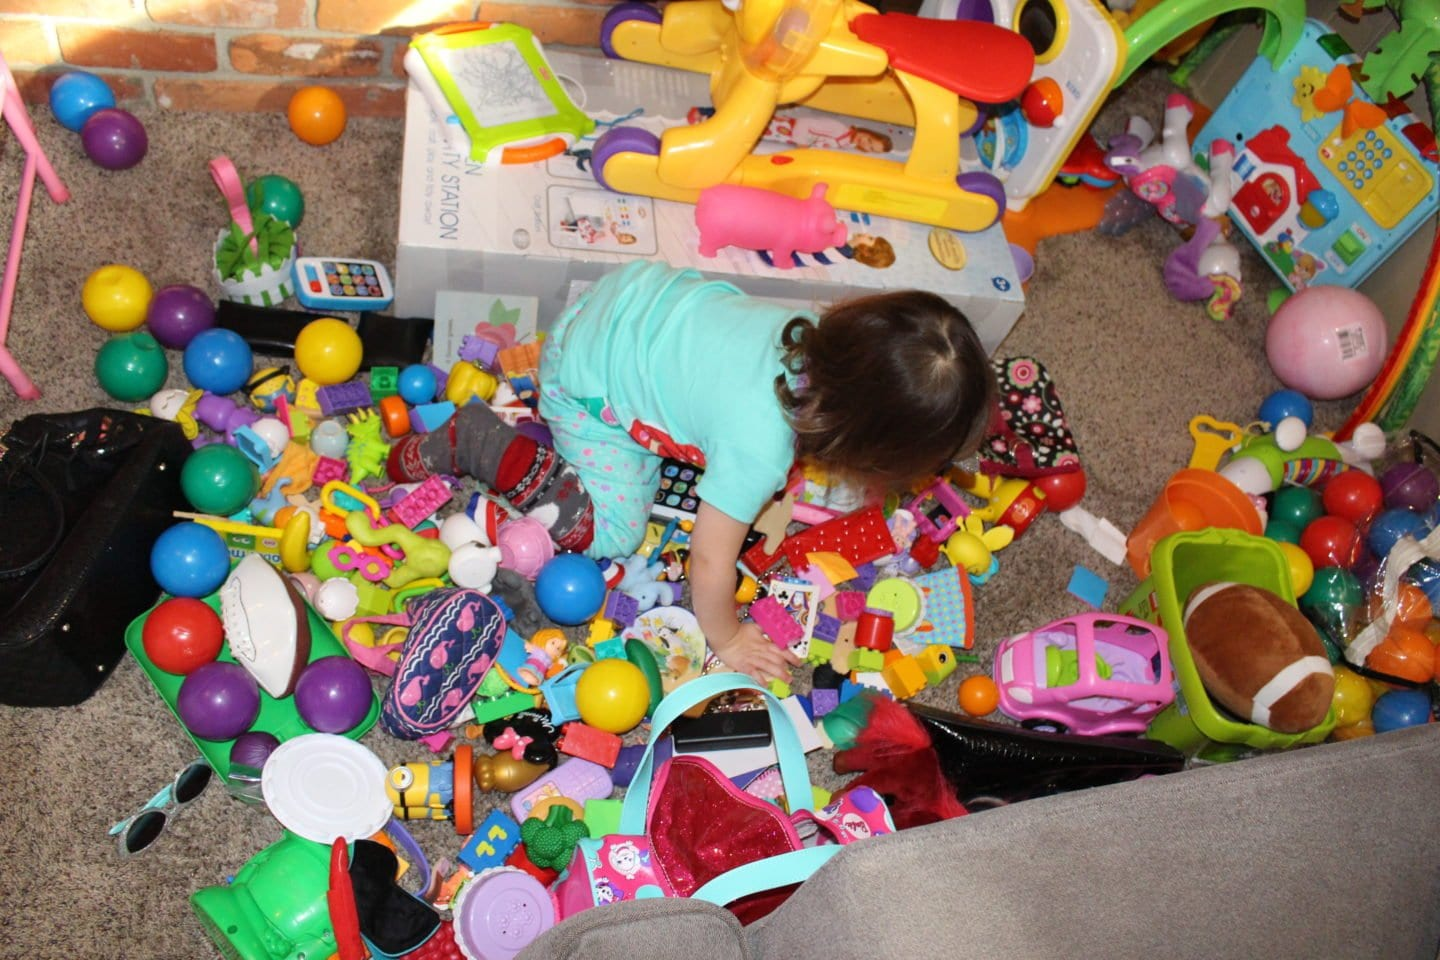 After Libby's 2nd birthday toys began taking over the living room. I knew I had to change something.